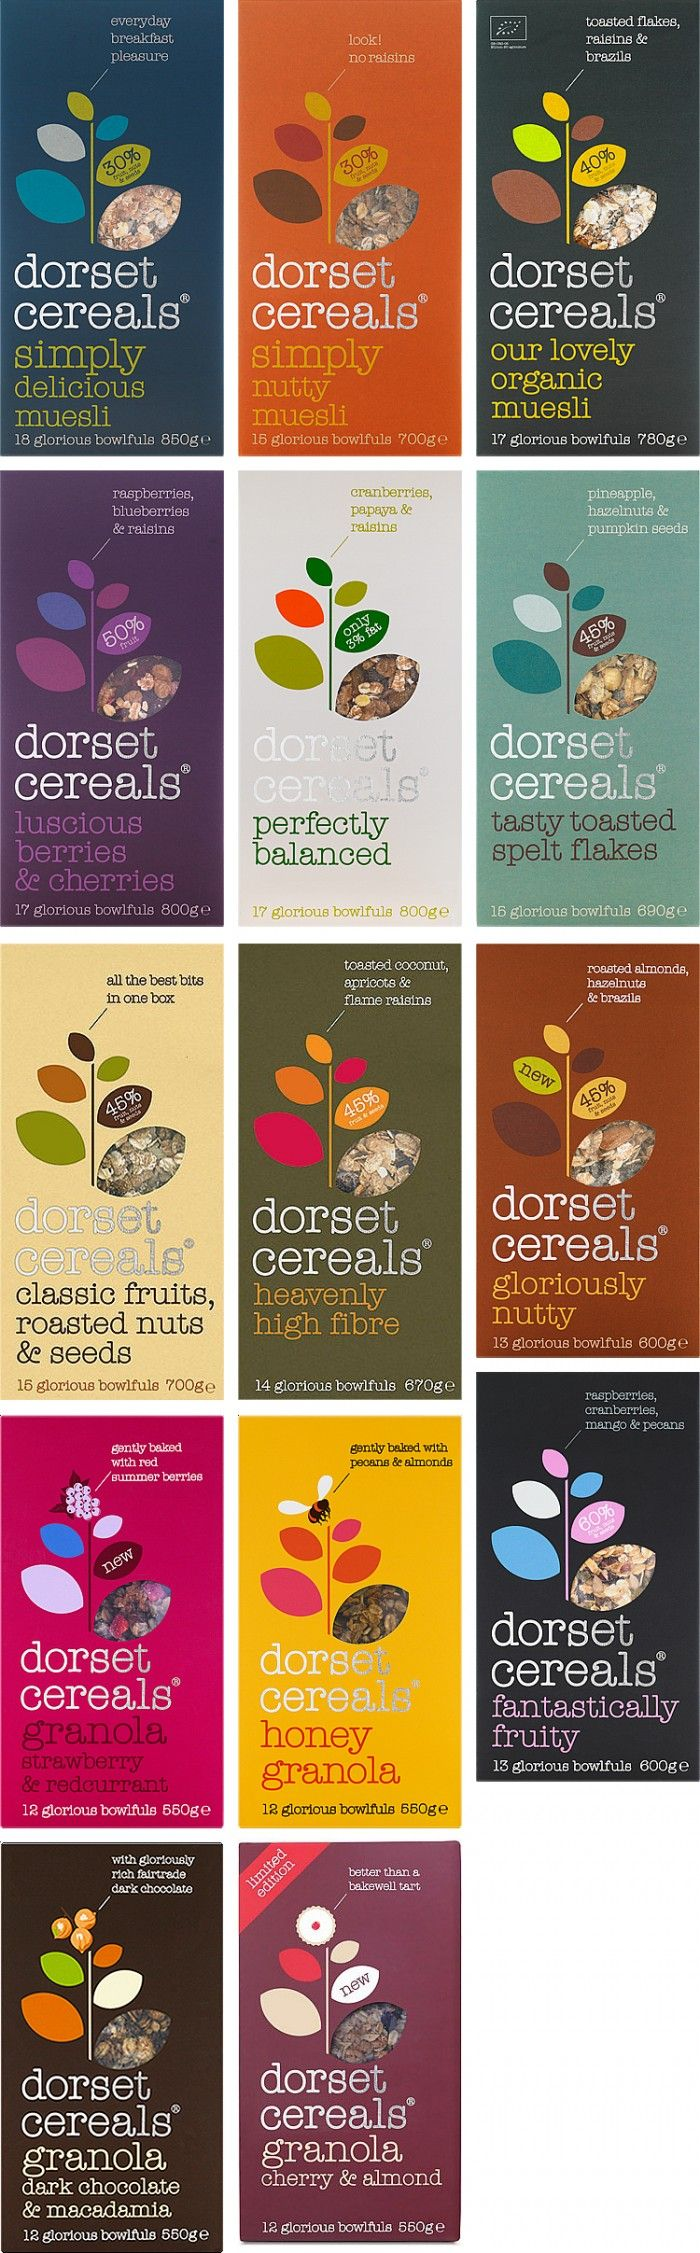 Dorset Cereals from England. A sophisticated packaging compared to typical…